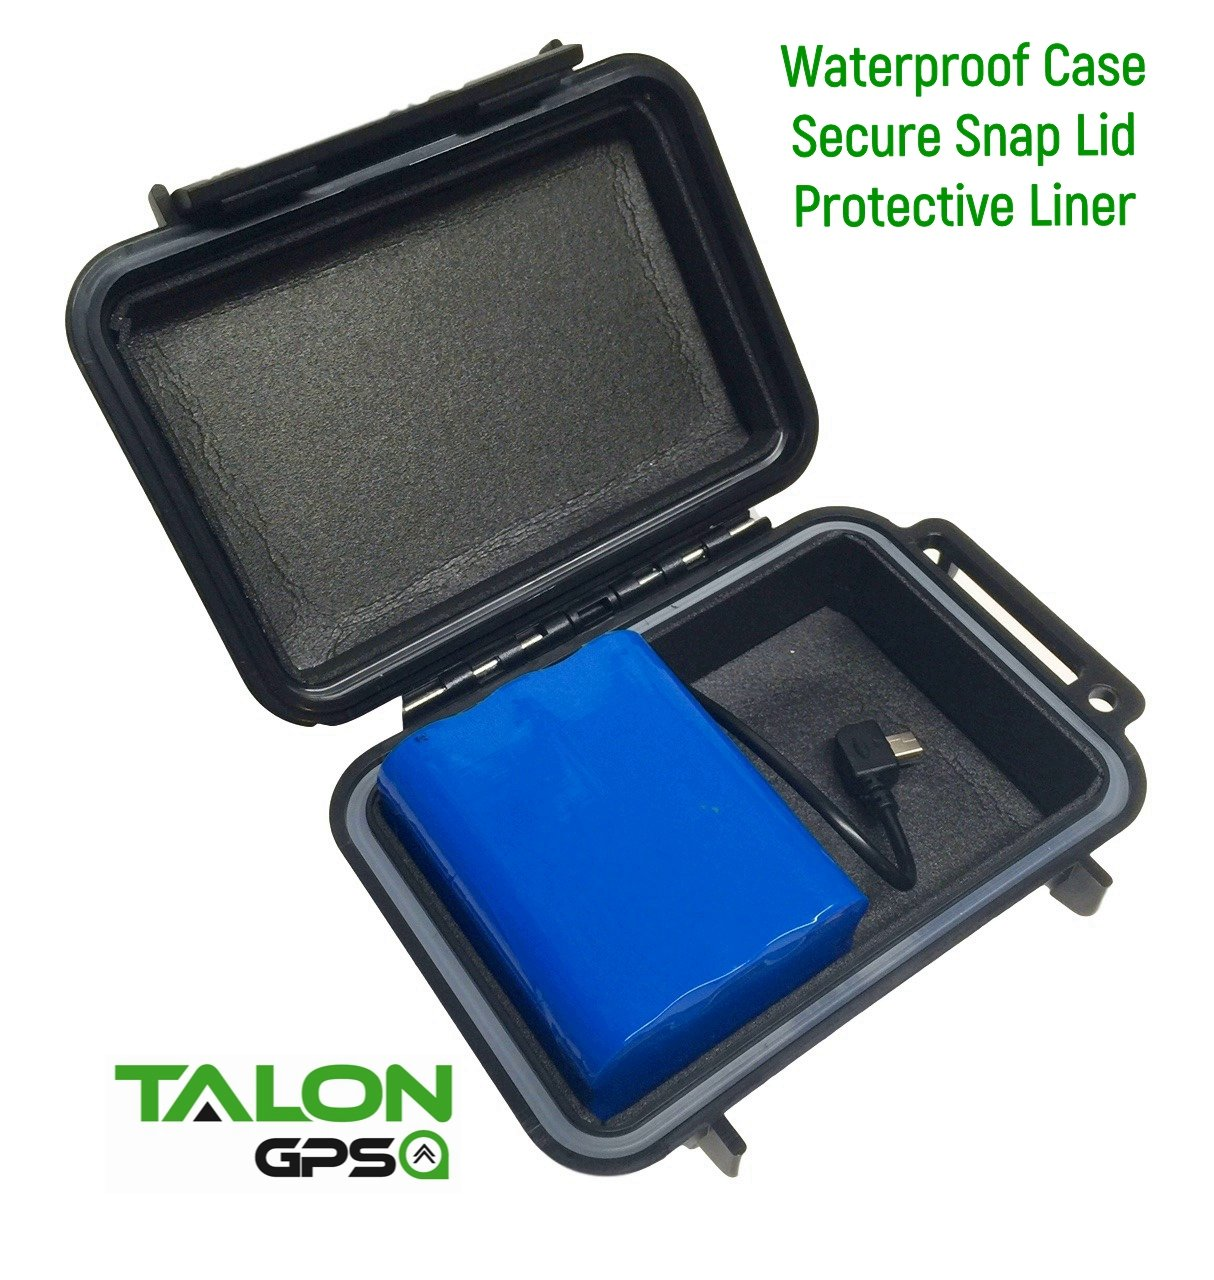 Talon GPS Battery Pack and Magnetic Vehicle Mount by Talon GPS